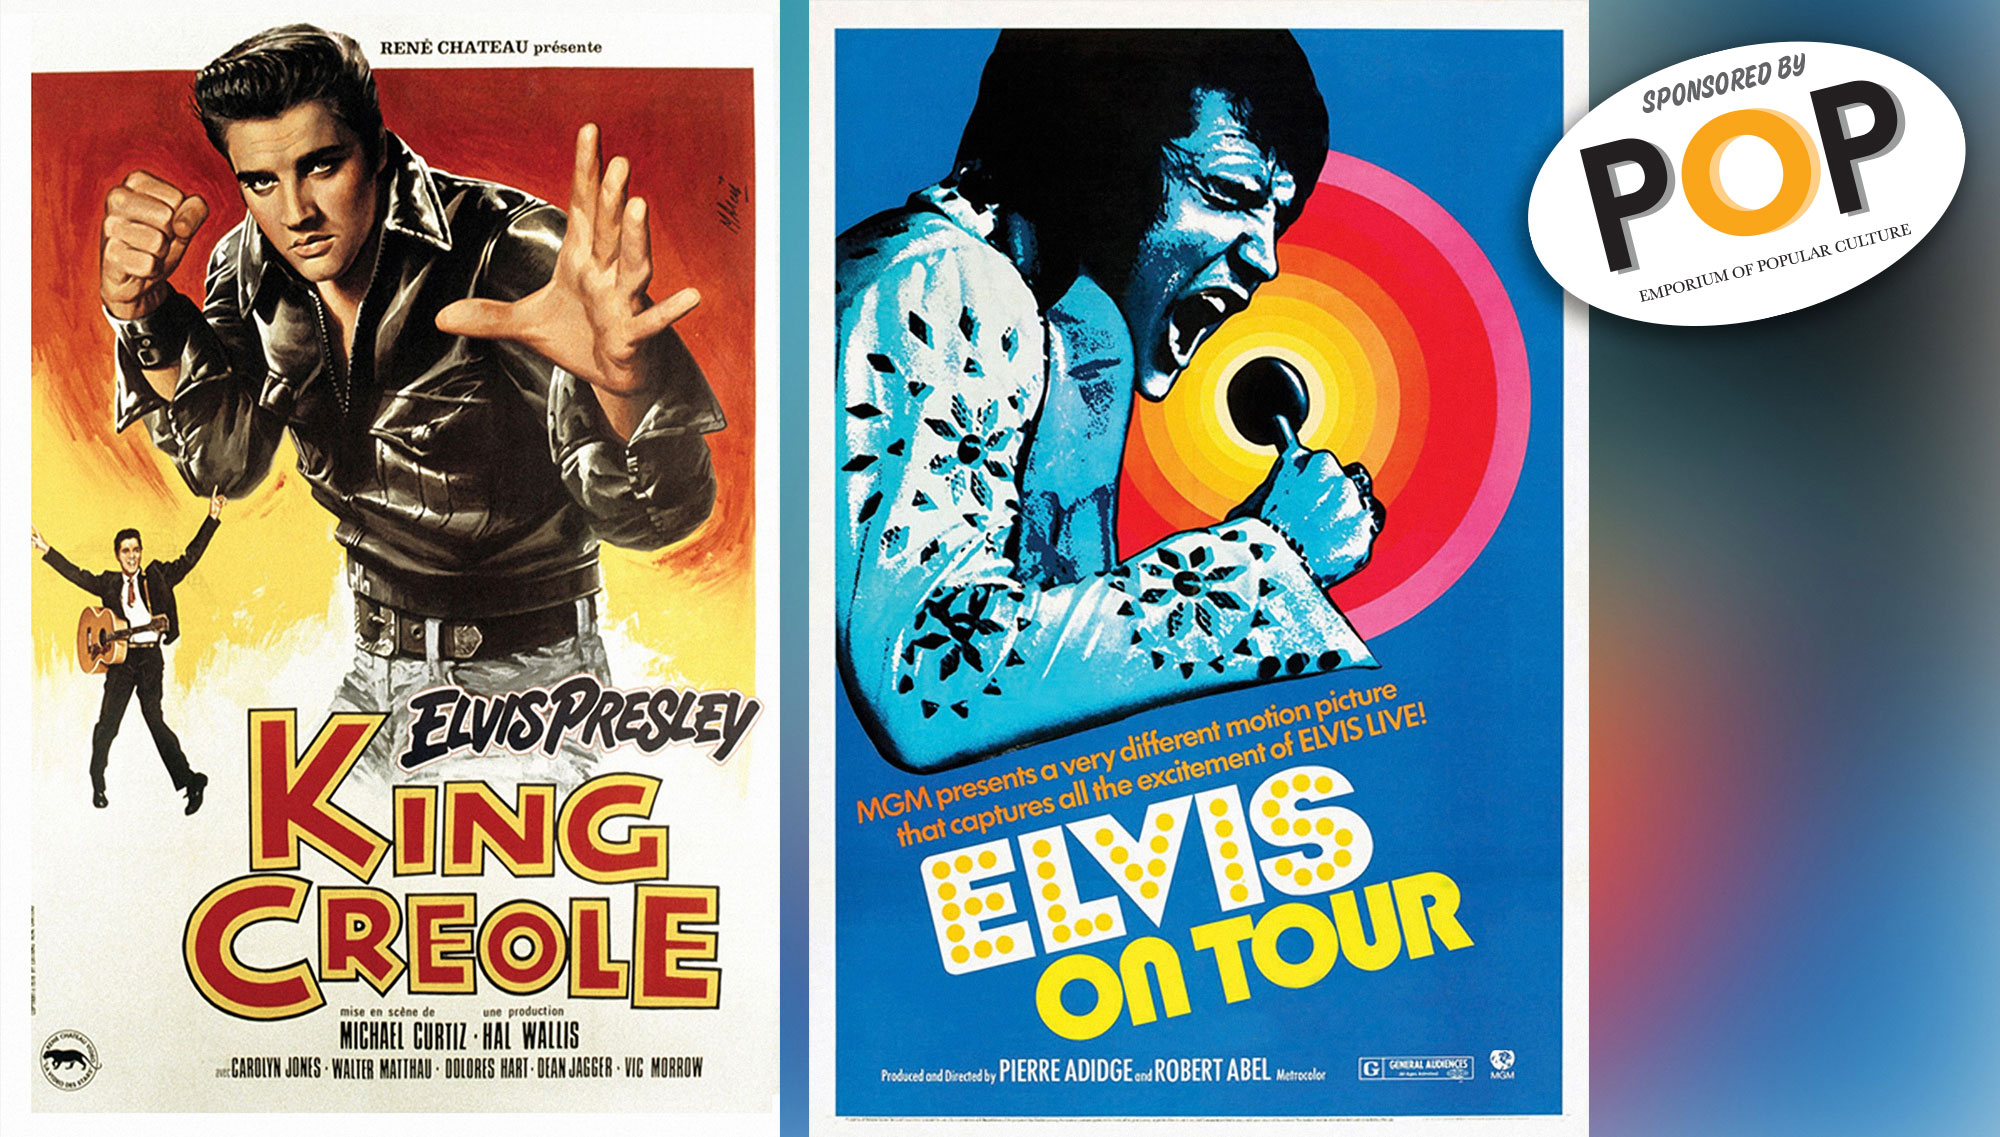 HUNKA HUNKA DOUBLE FEATURE  <h6>Sponsored by POP, The Emporium of Popular Culture  </h6><H5>August 16  </h5>